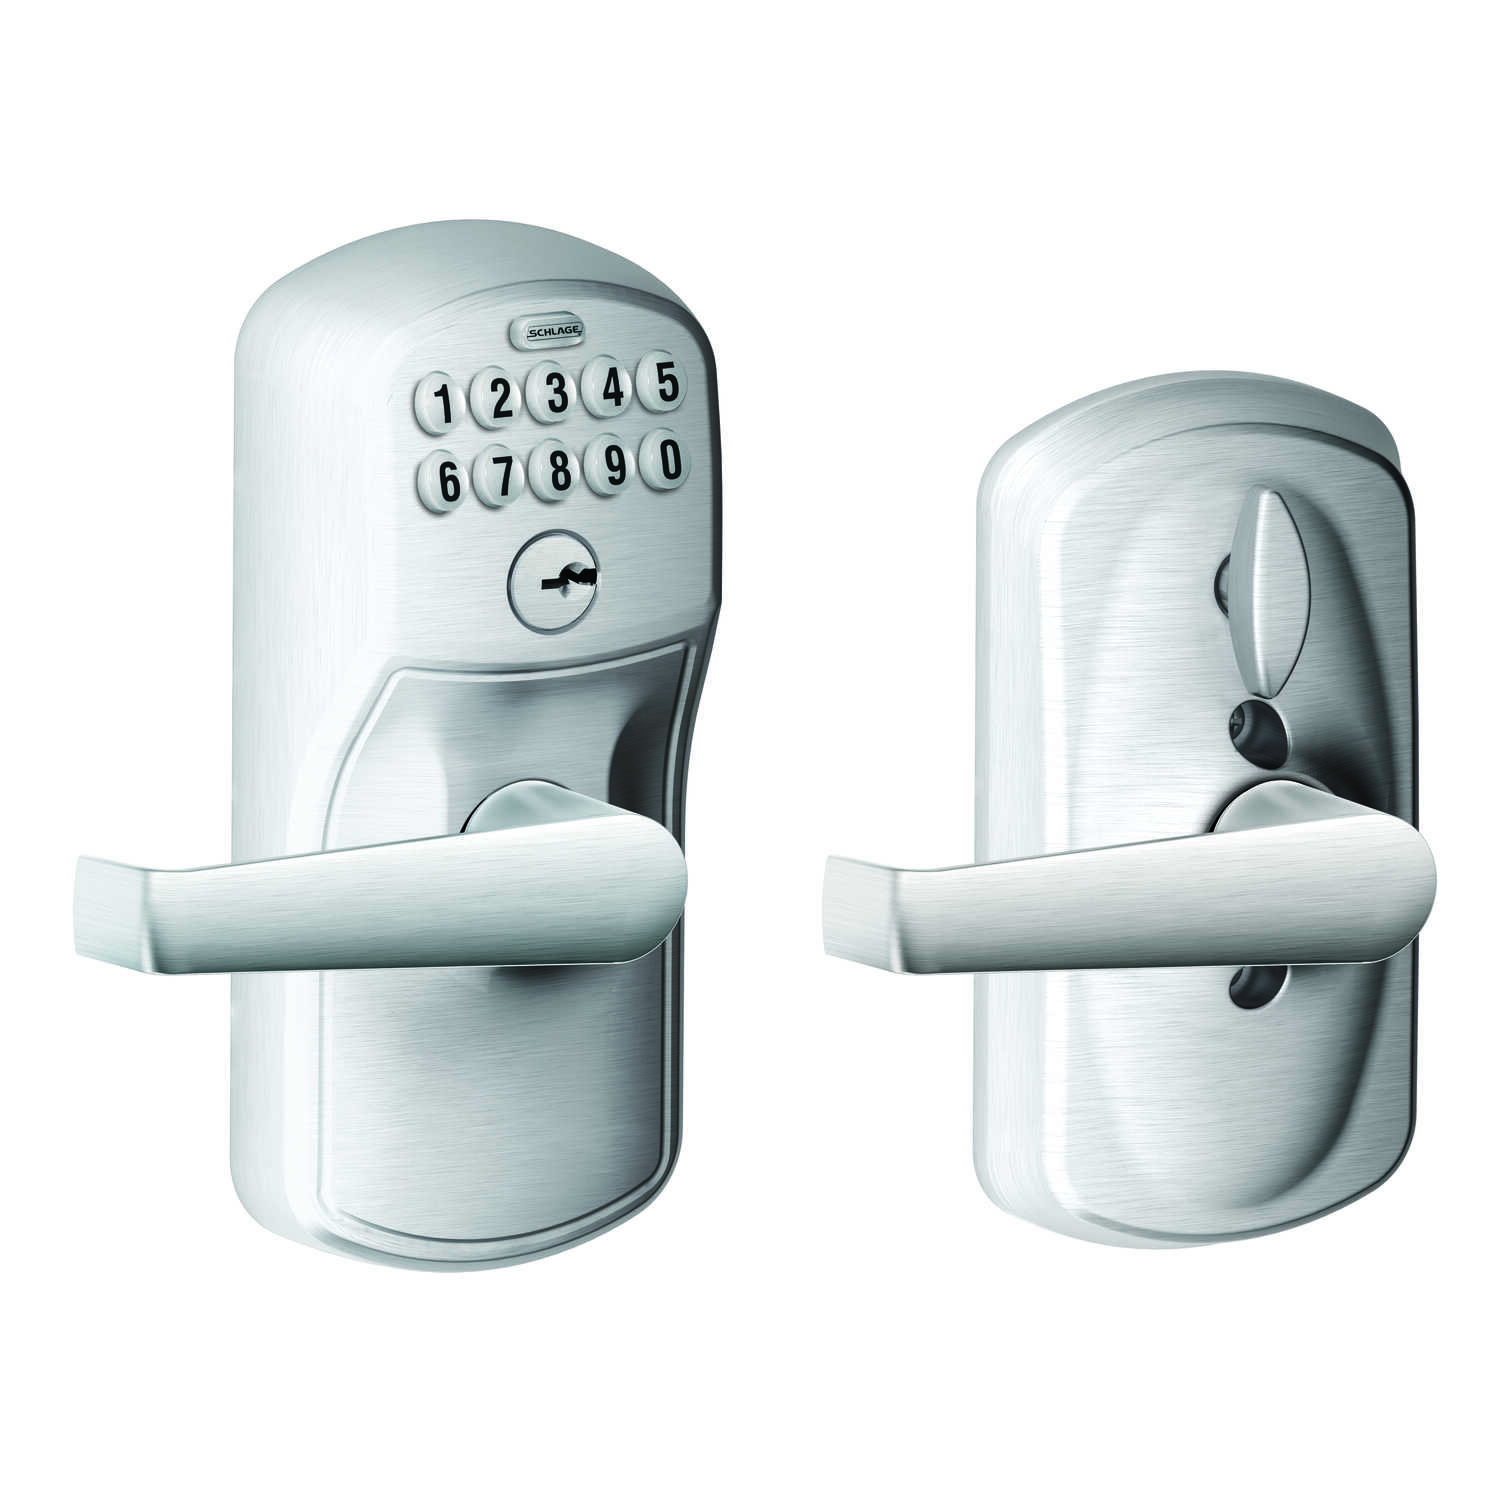 Schlage  Satin Nickel  Steel  Electronic Keypad Entry Lock